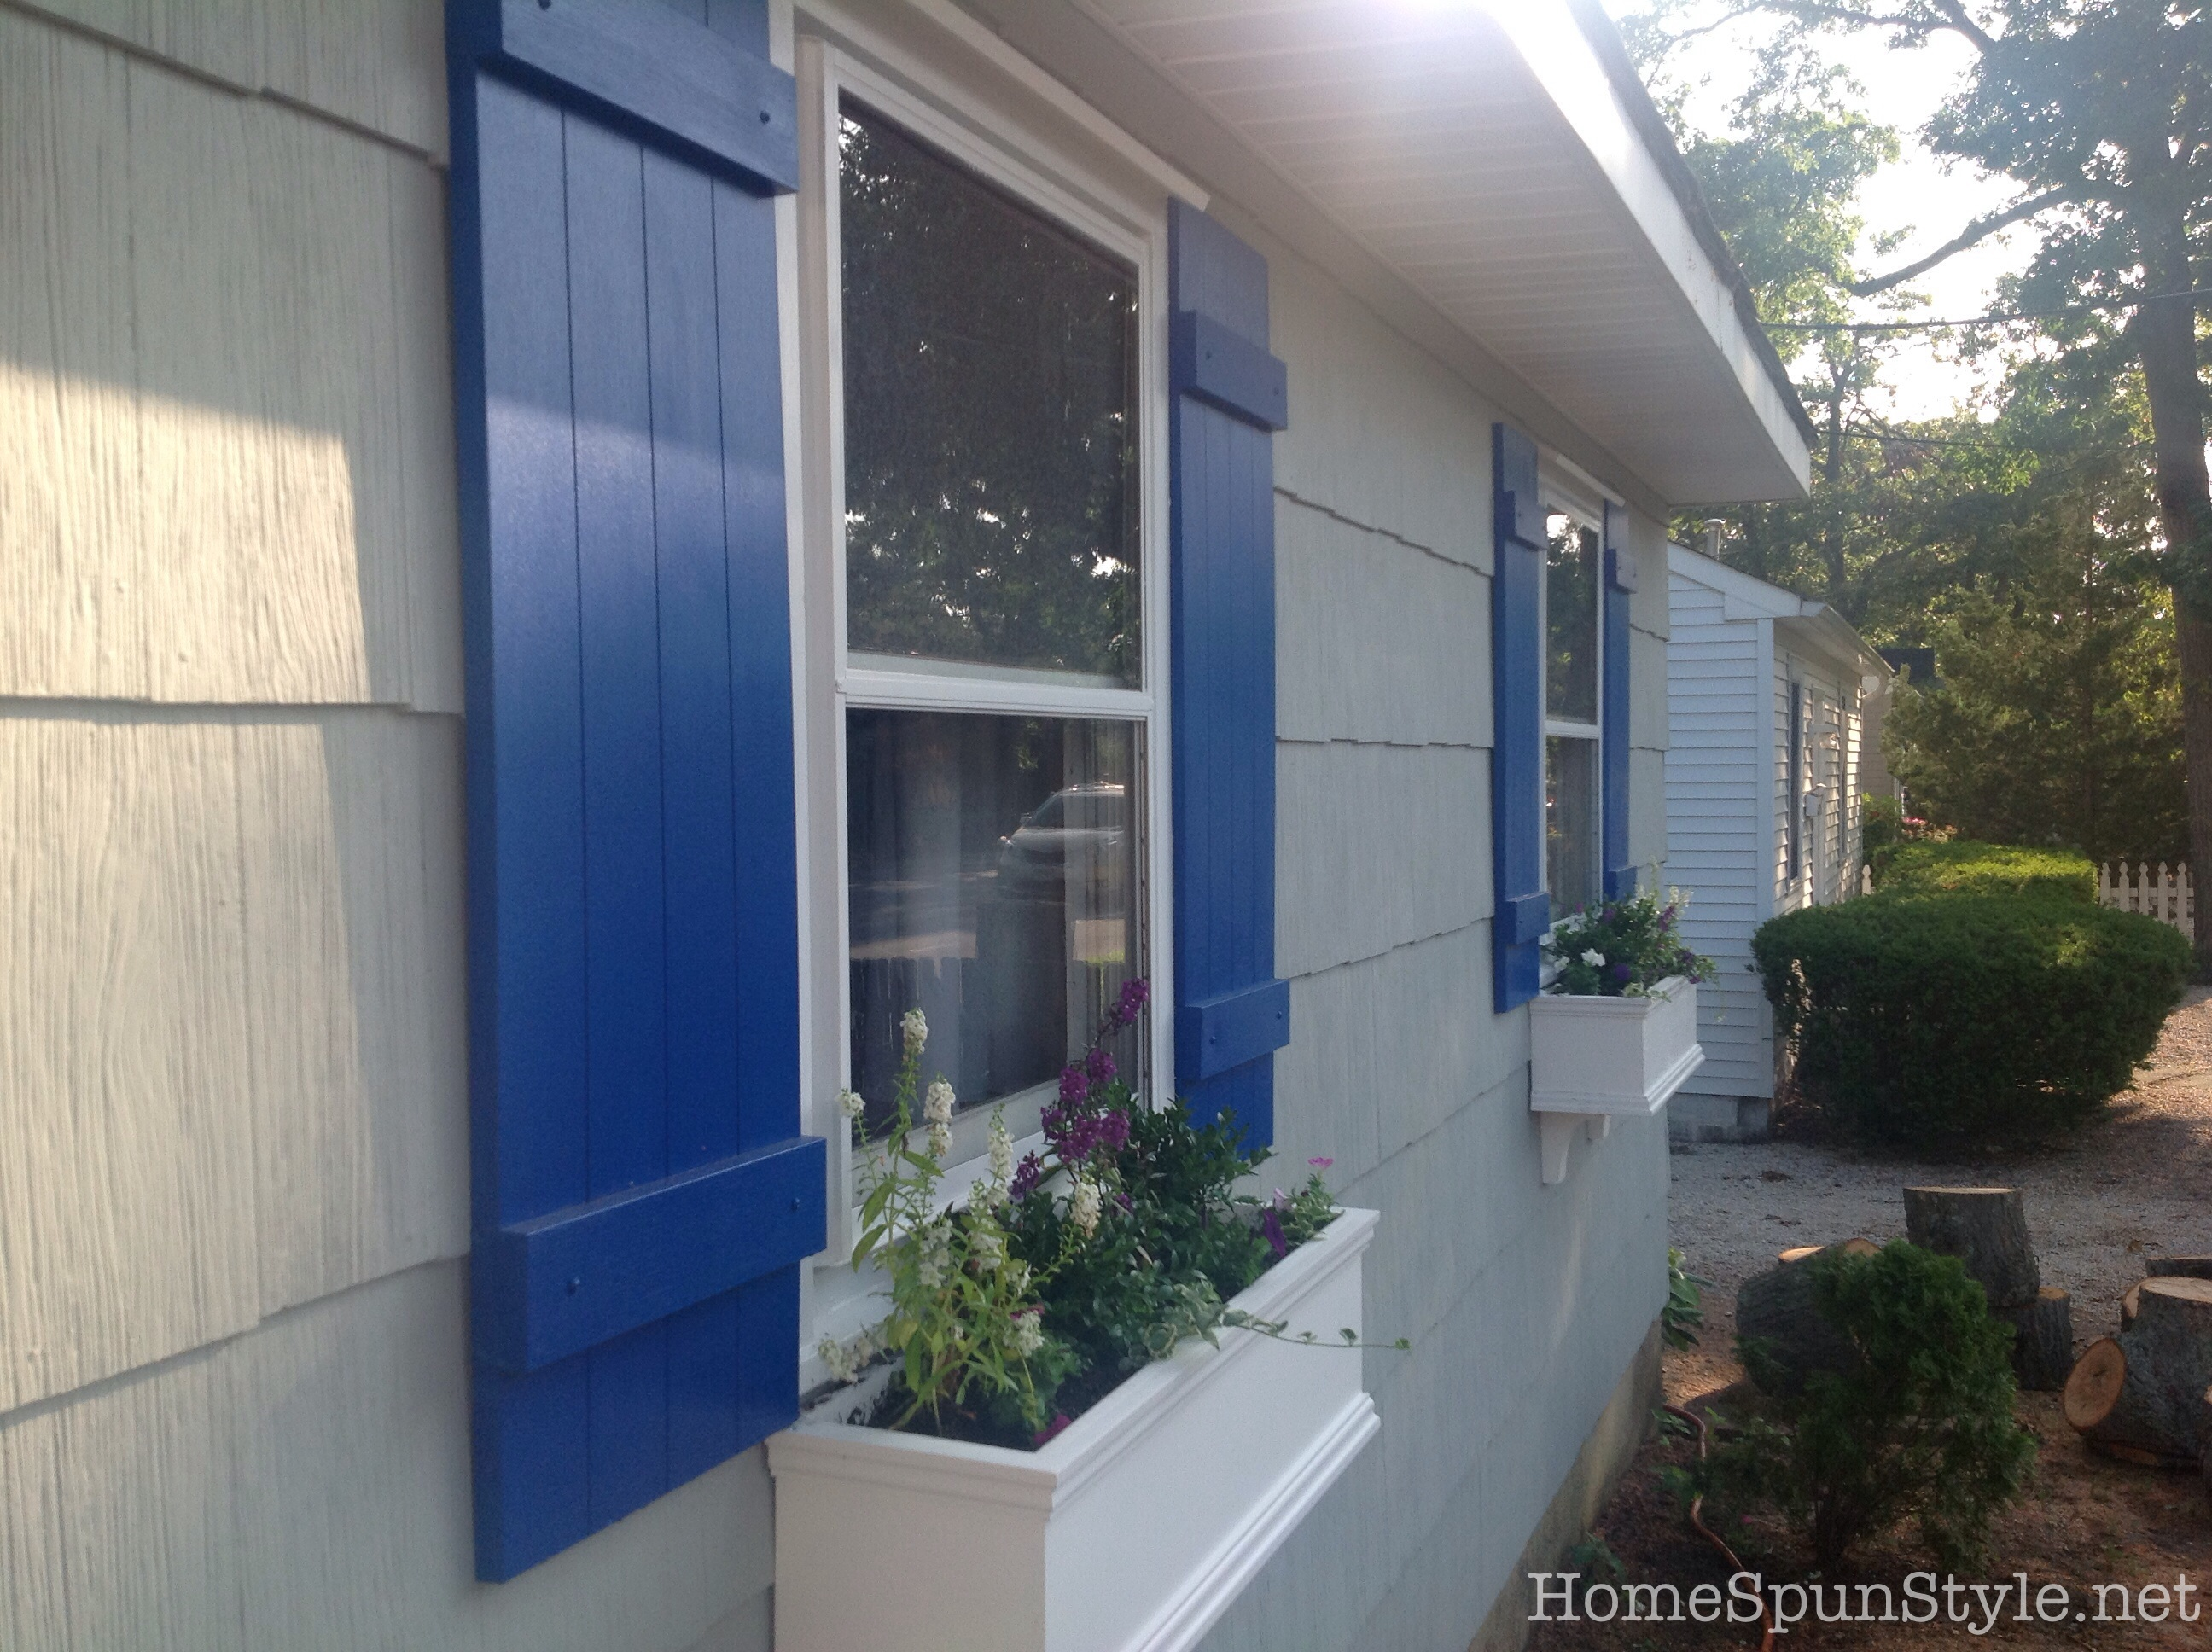 Beach house exterior color scheme home spun style - Coastal home exterior color schemes ...